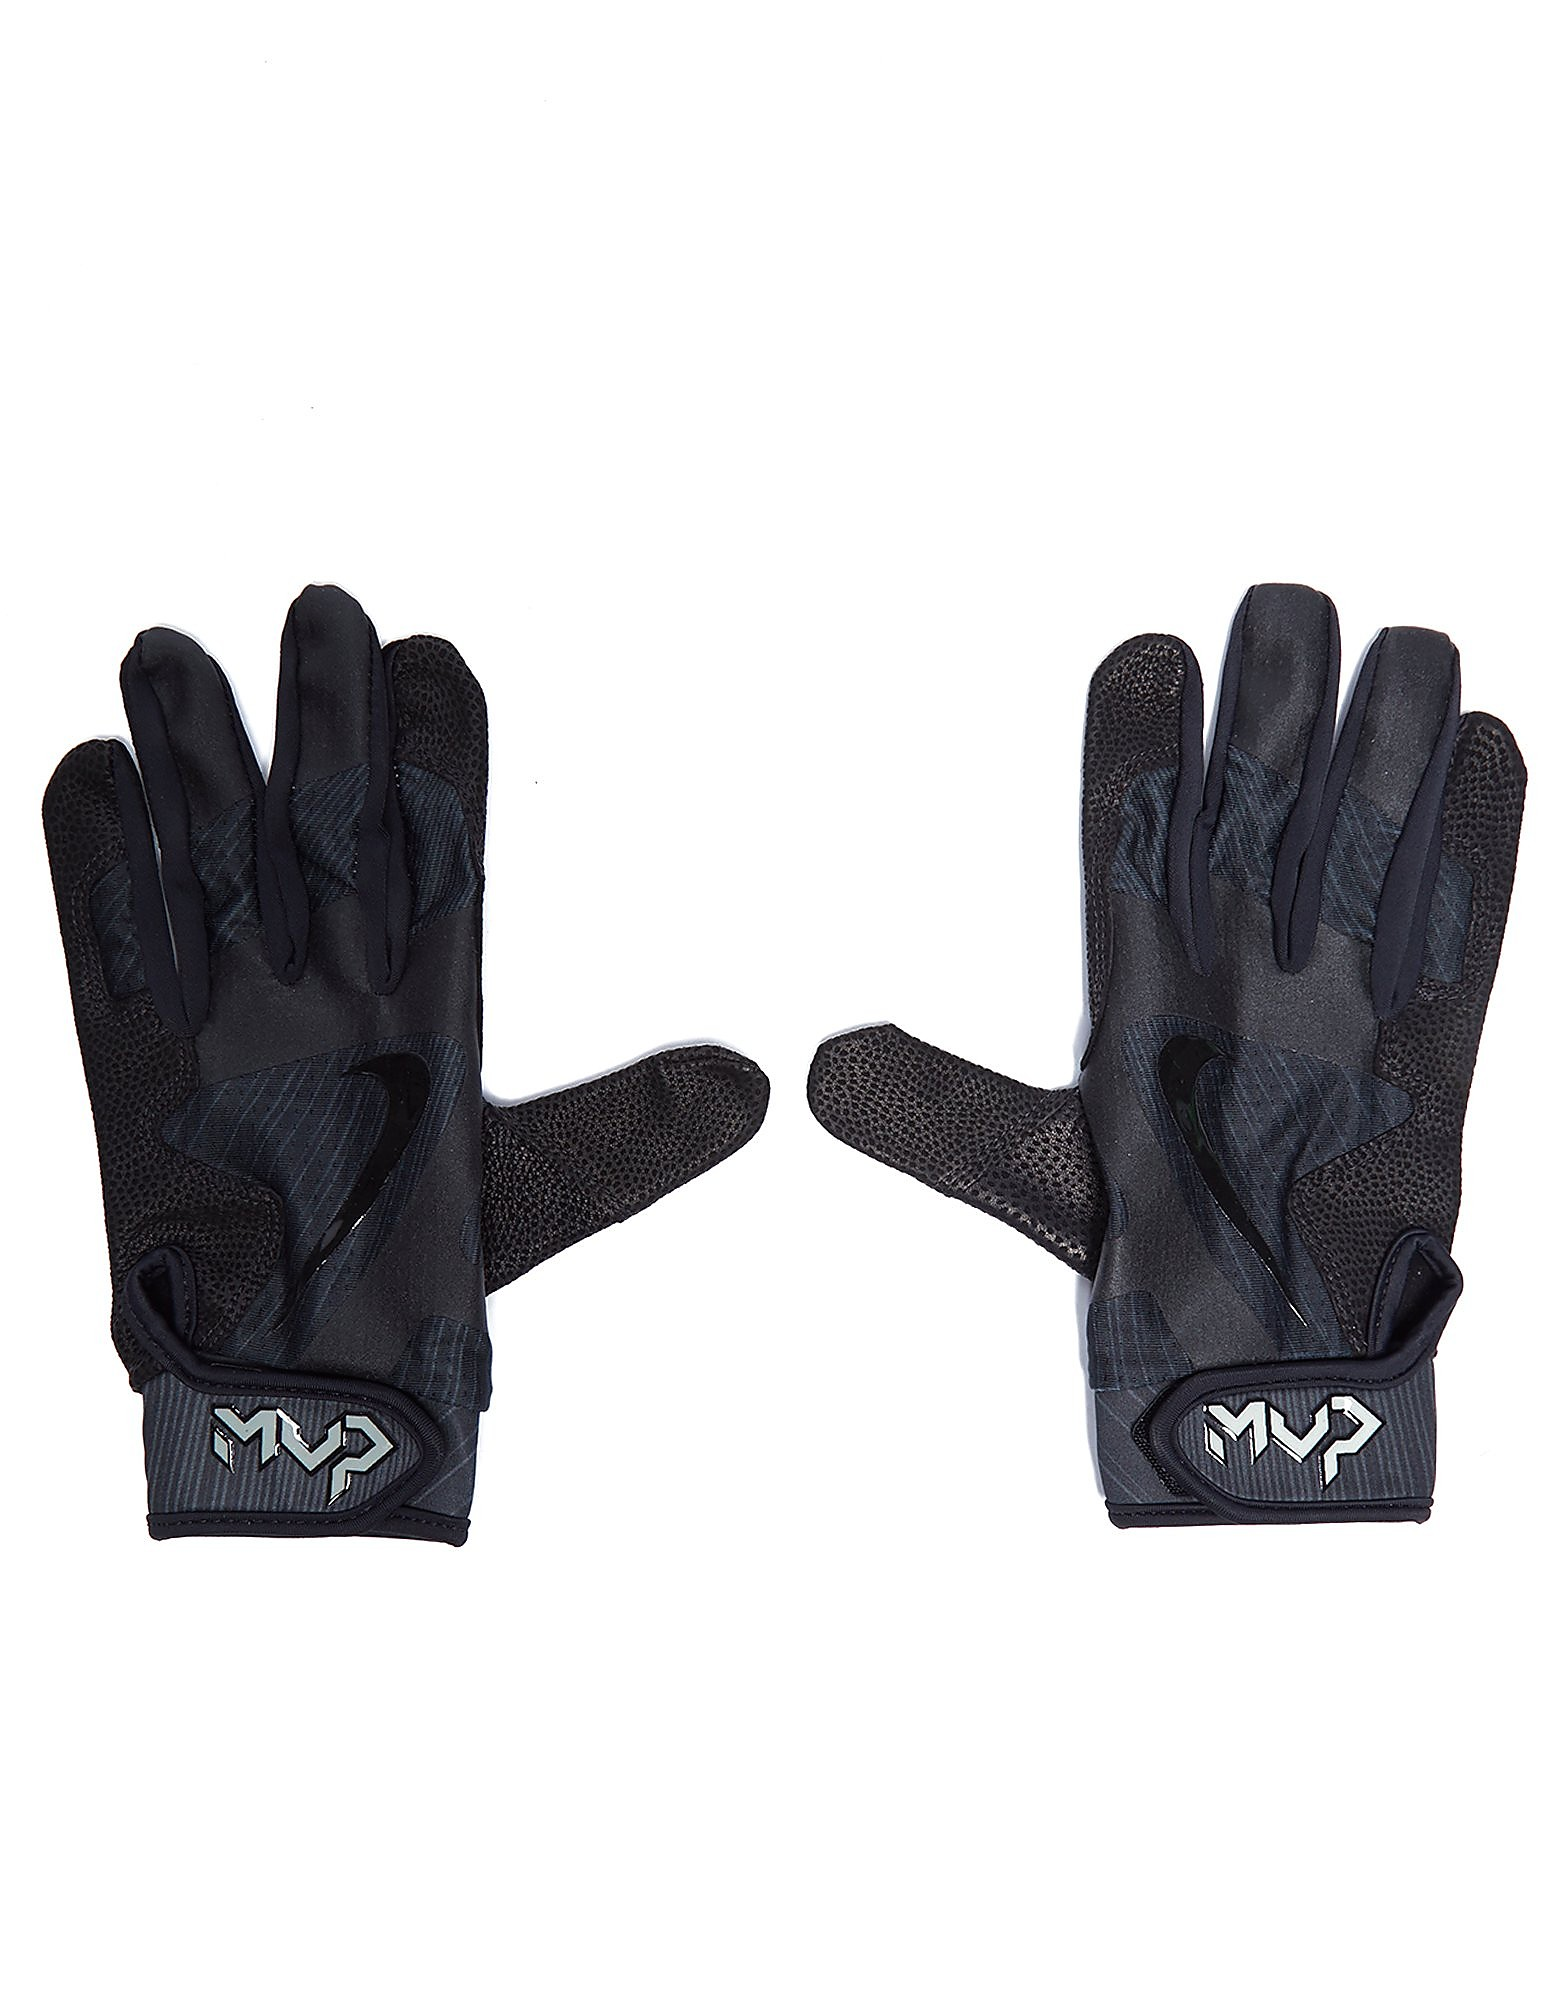 Nike MVP Pro Batting Gloves